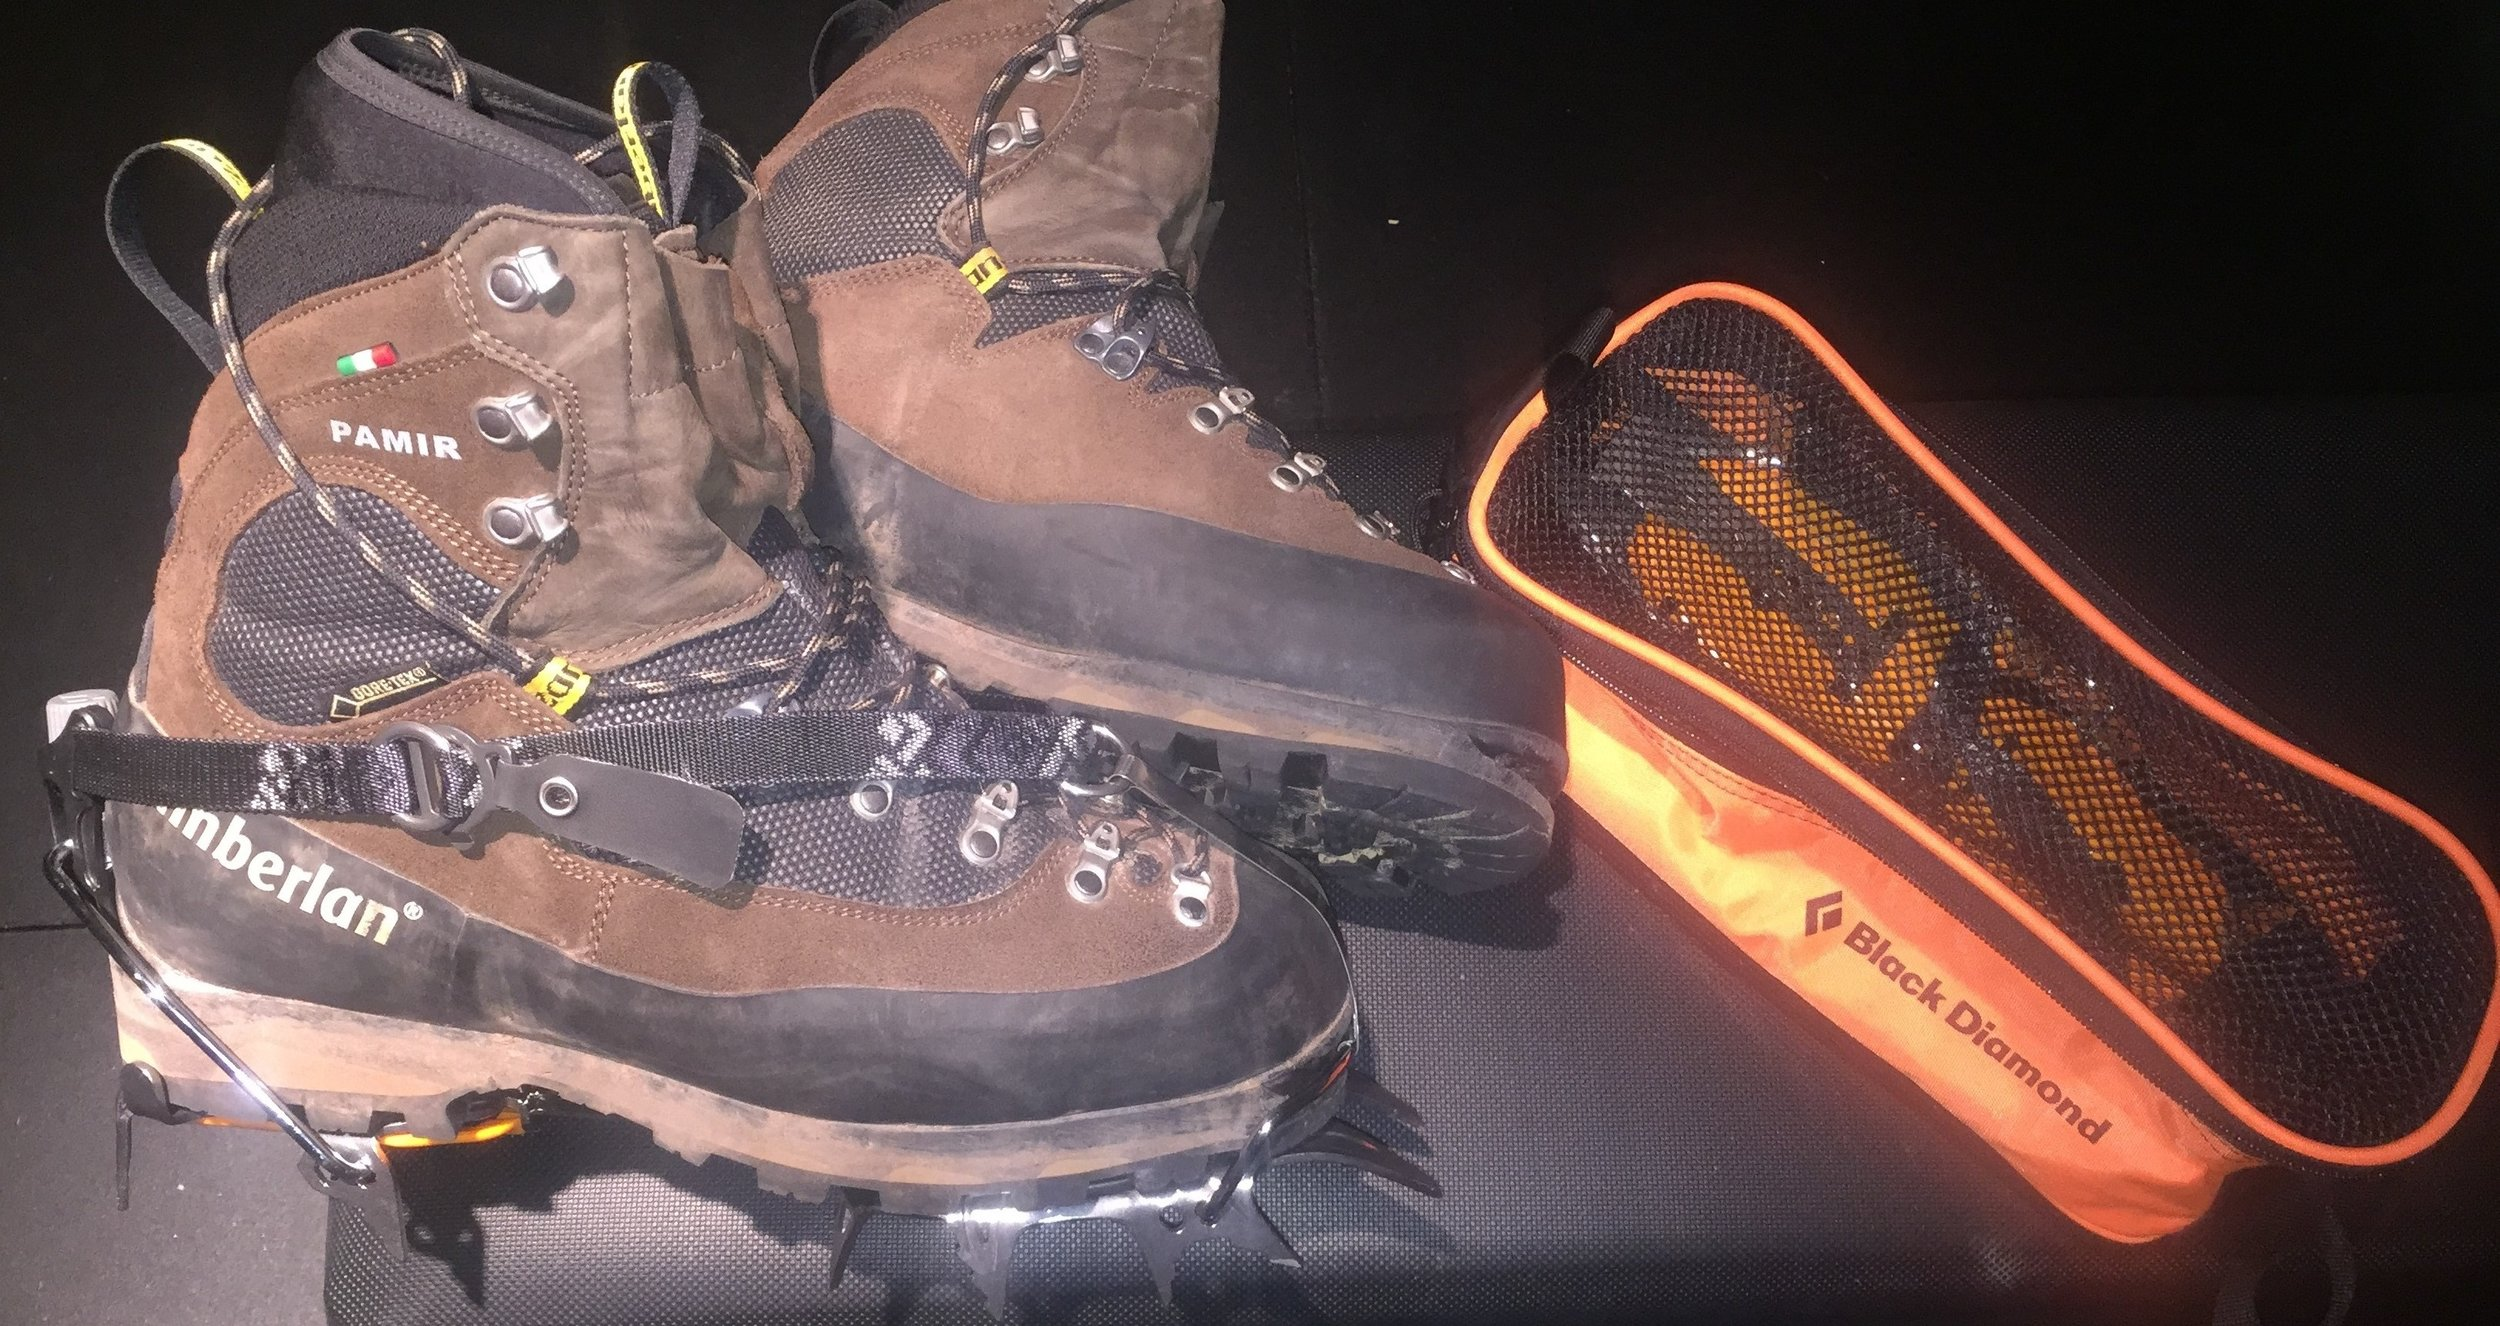 The Pamirs are one of several technical mountaineering boot models that are marketed to hunters, but may leave the buyer feeling slighted. Unless every waking moment of the hunt is spent in crampons, this boot is far too rigid.